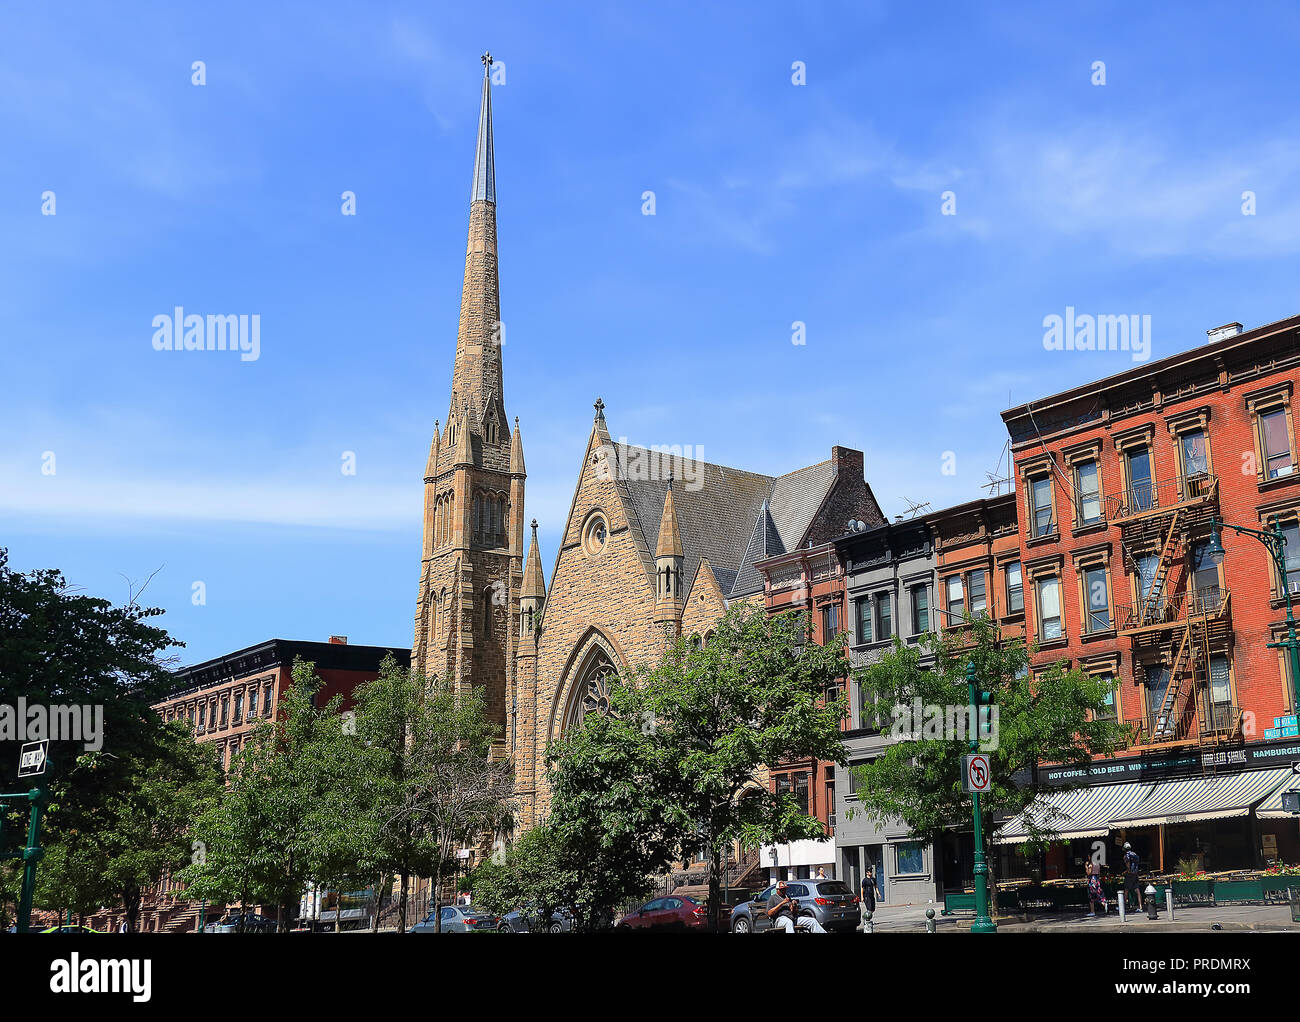 10027 Stock Photos & 10027 Stock Images - Alamy